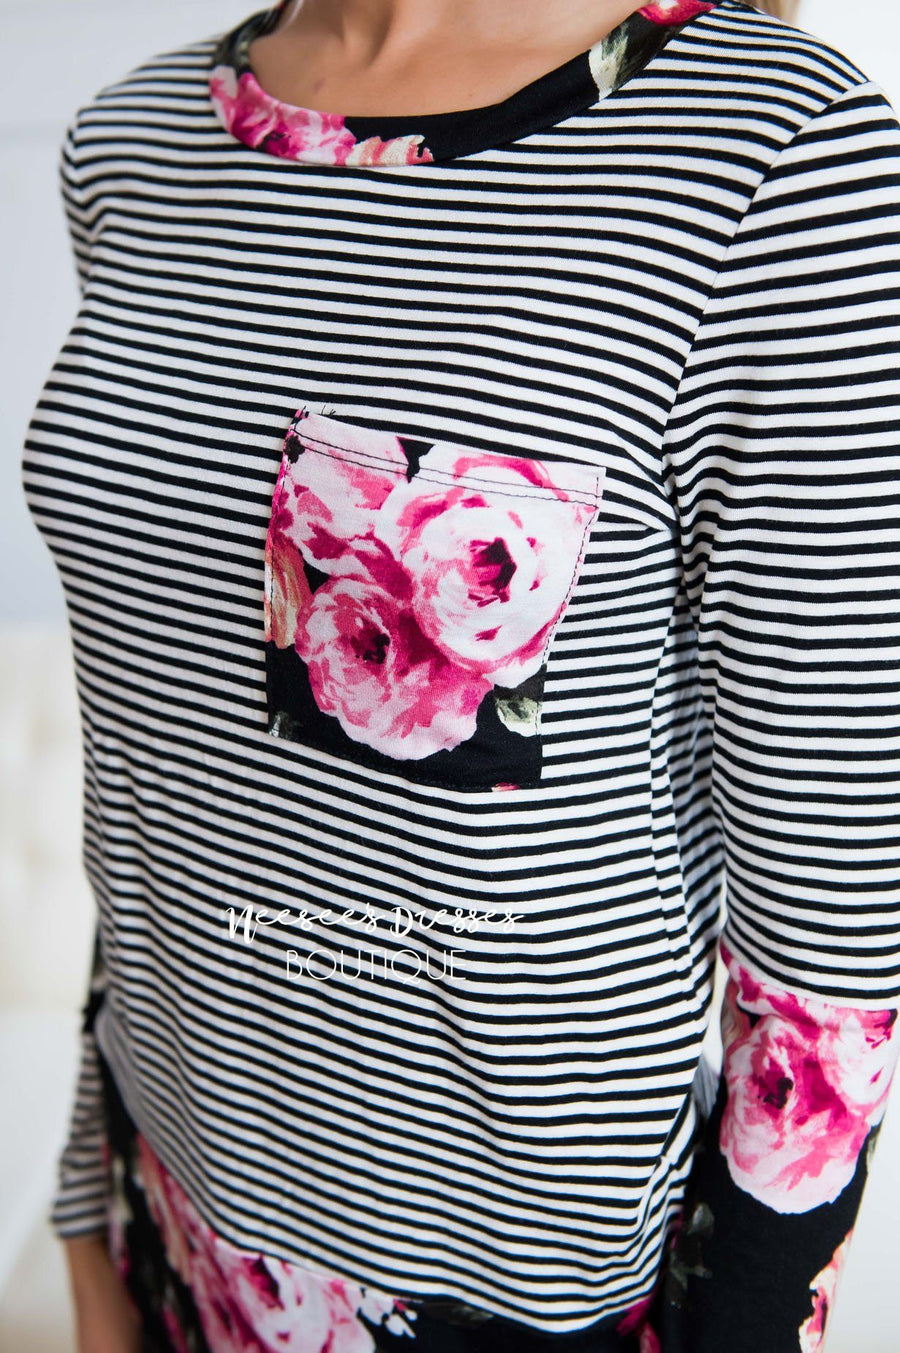 Blooming Blossom Floral & Striped Top Tops vendor-unknown